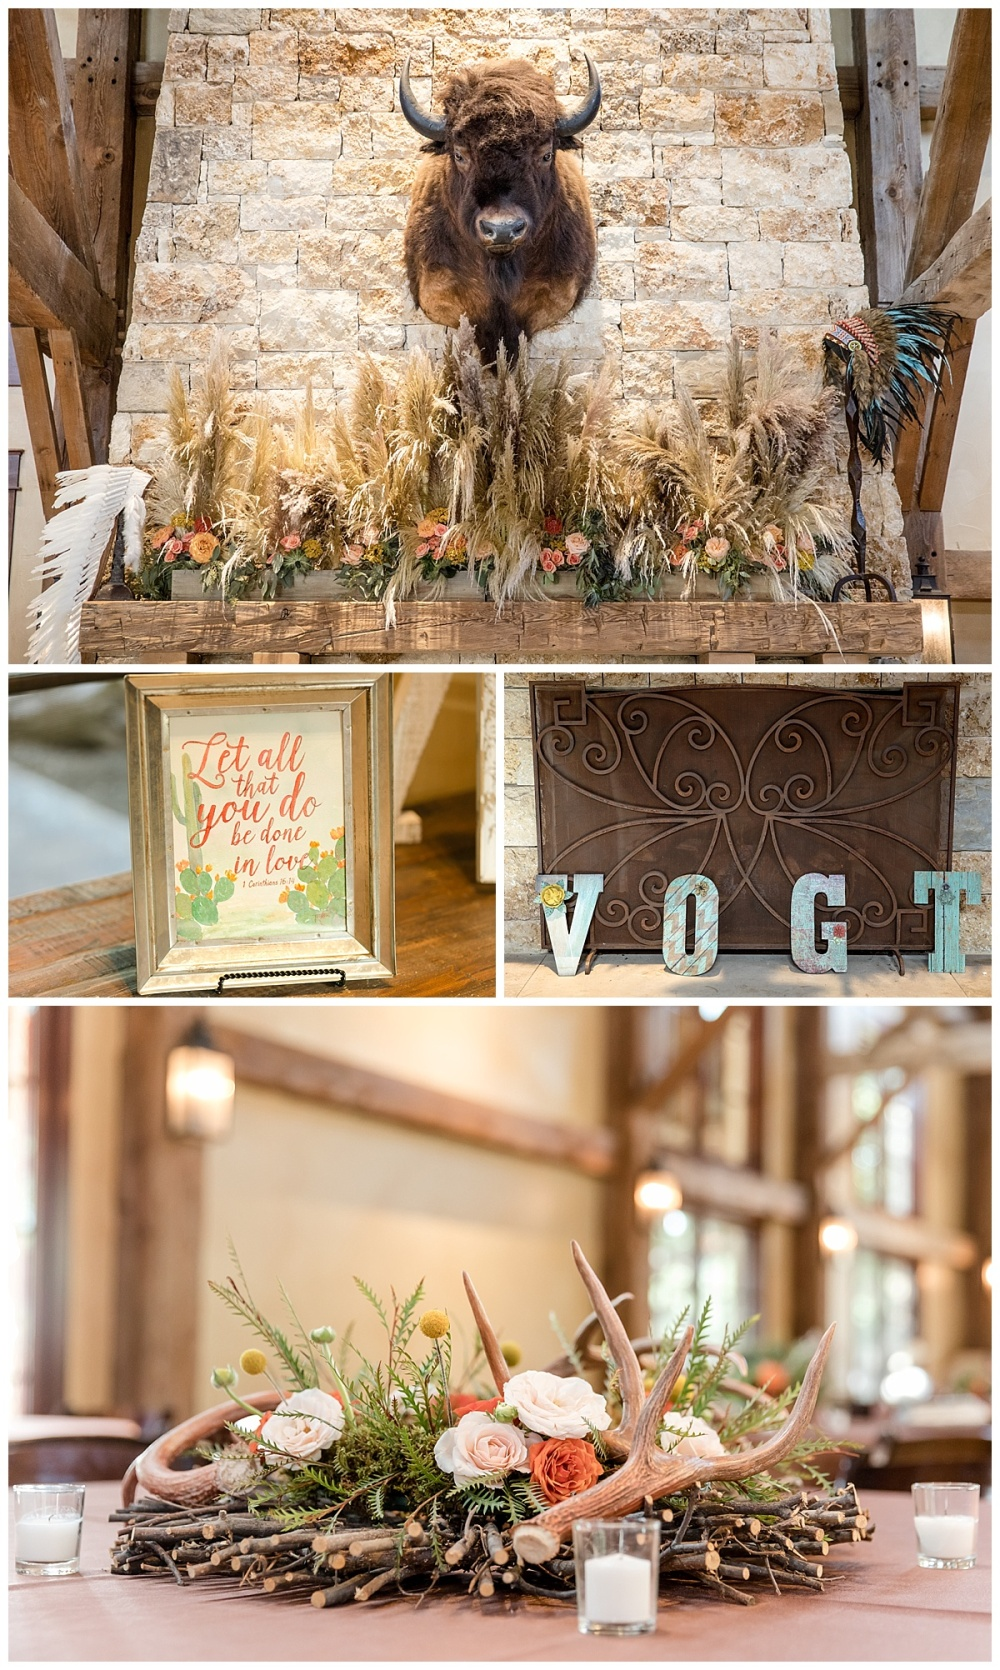 Texas-Wedding-Photographer-Braded-T-Ranch-Kendalia-Bride-Groom-Southwestern-Style-Carly-Barton-Photography-Vogt_0007.jpg